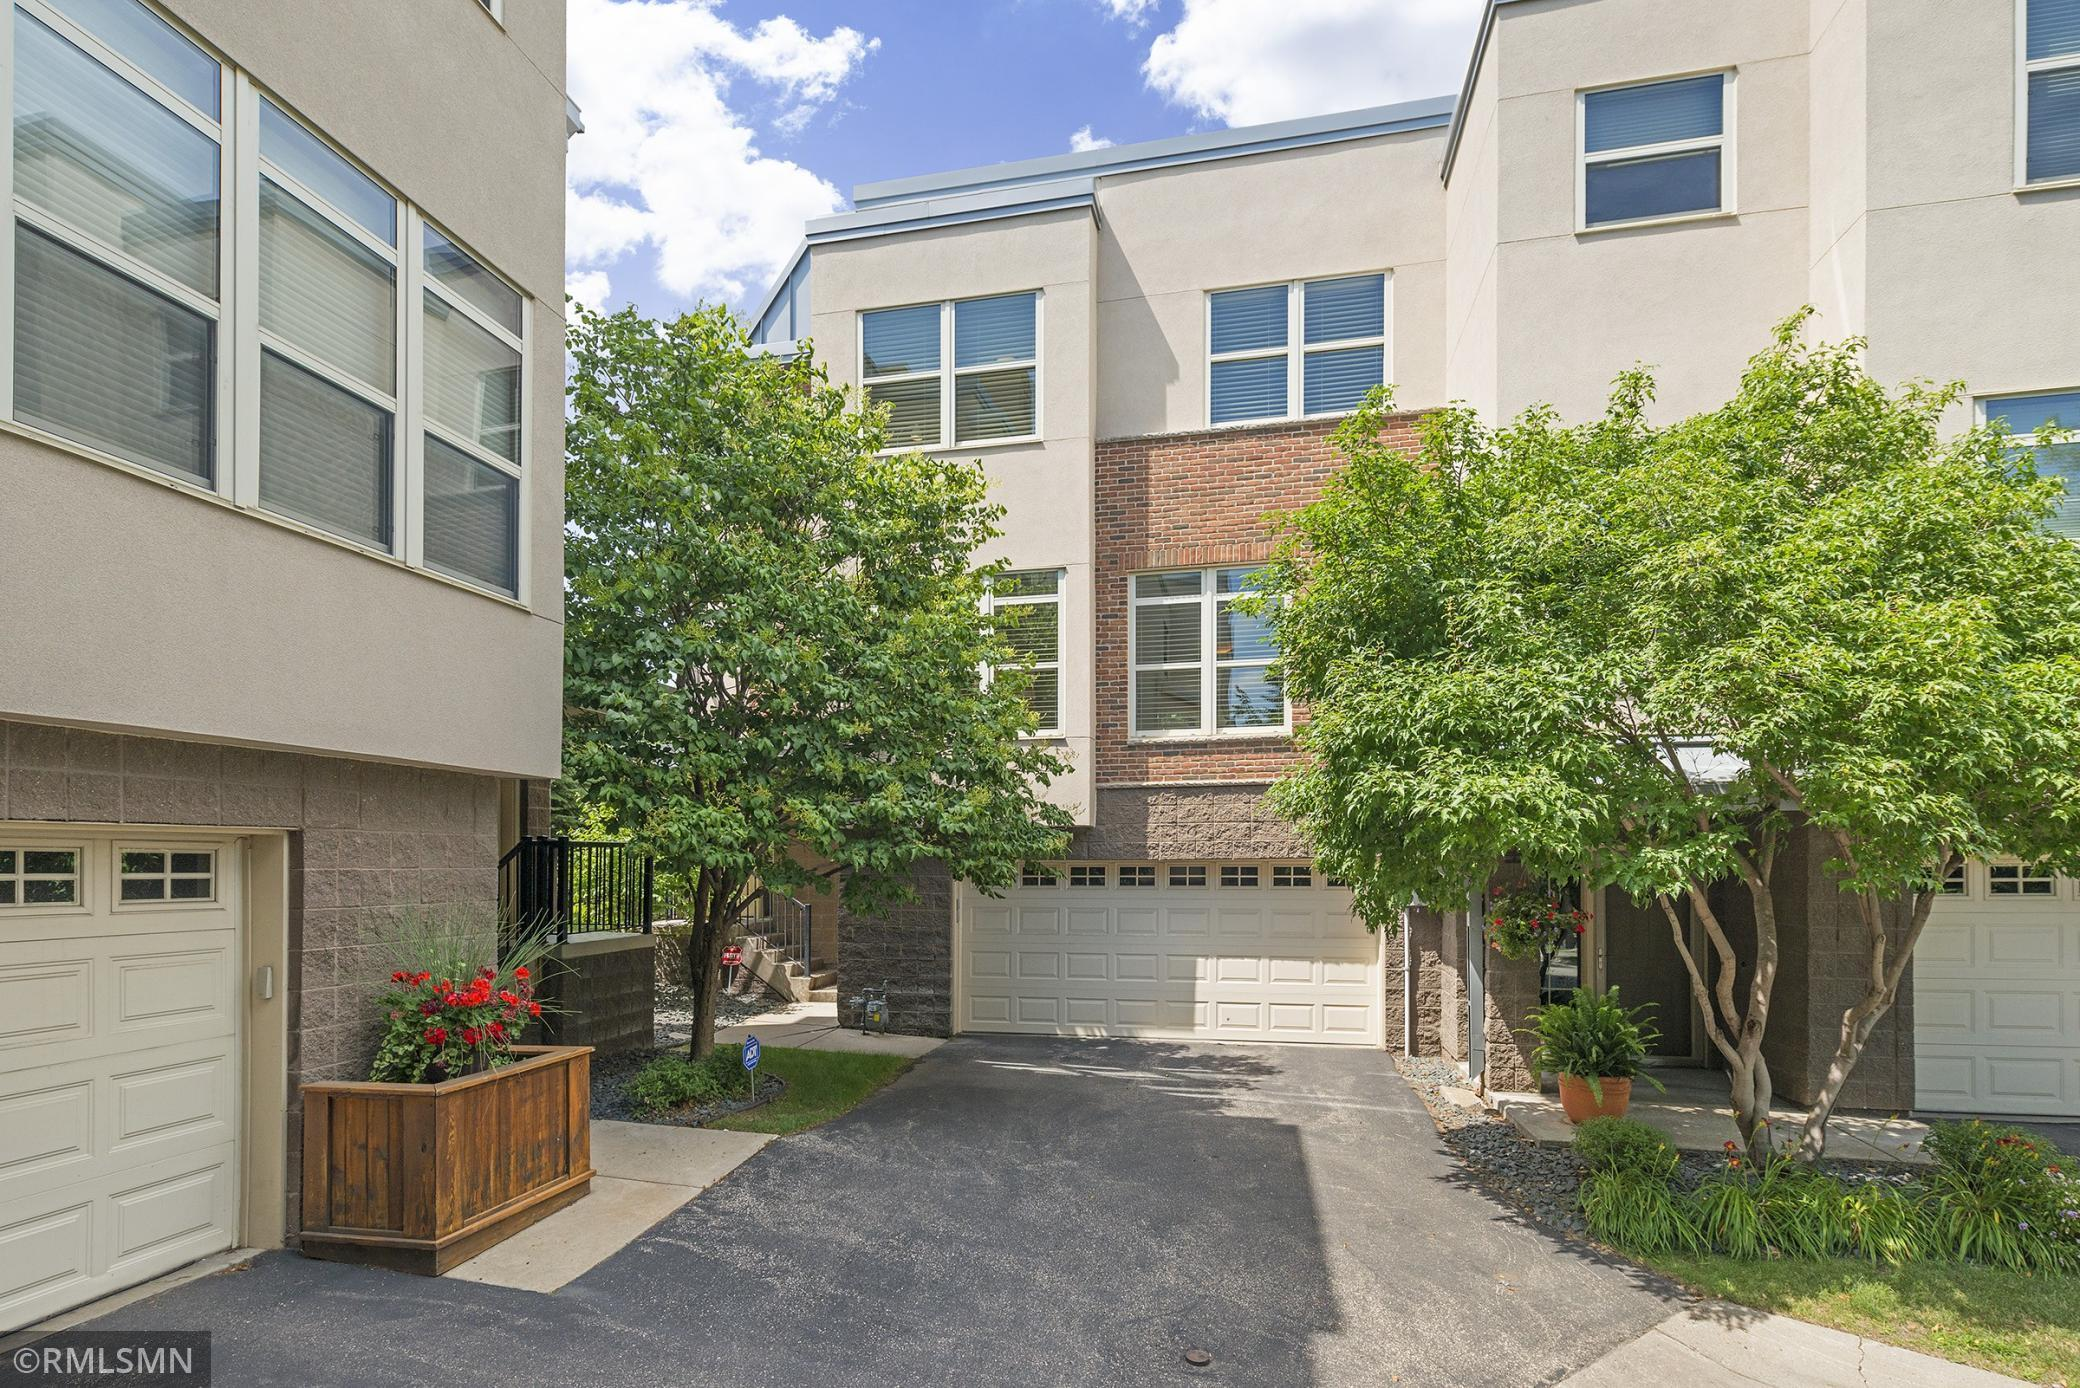 This spacious & sunny end-unit townhome is located in the most private corner of Village Townhomes.  It is one of the corner units with the largest floor plans in this community and features plenty of space for work-from-home AND home gym.   Enjoy a private backyard balcony, 9 ft ceilings, tons of windows, and the convenient 2-car garage.  The upper-level loft can easily be converted to a 4th bedroom.   Walk to everything in this European-style walking neighborhood just across from downtown and surrounded by parks, the riverfront, shops, restaurants, and historic charm.